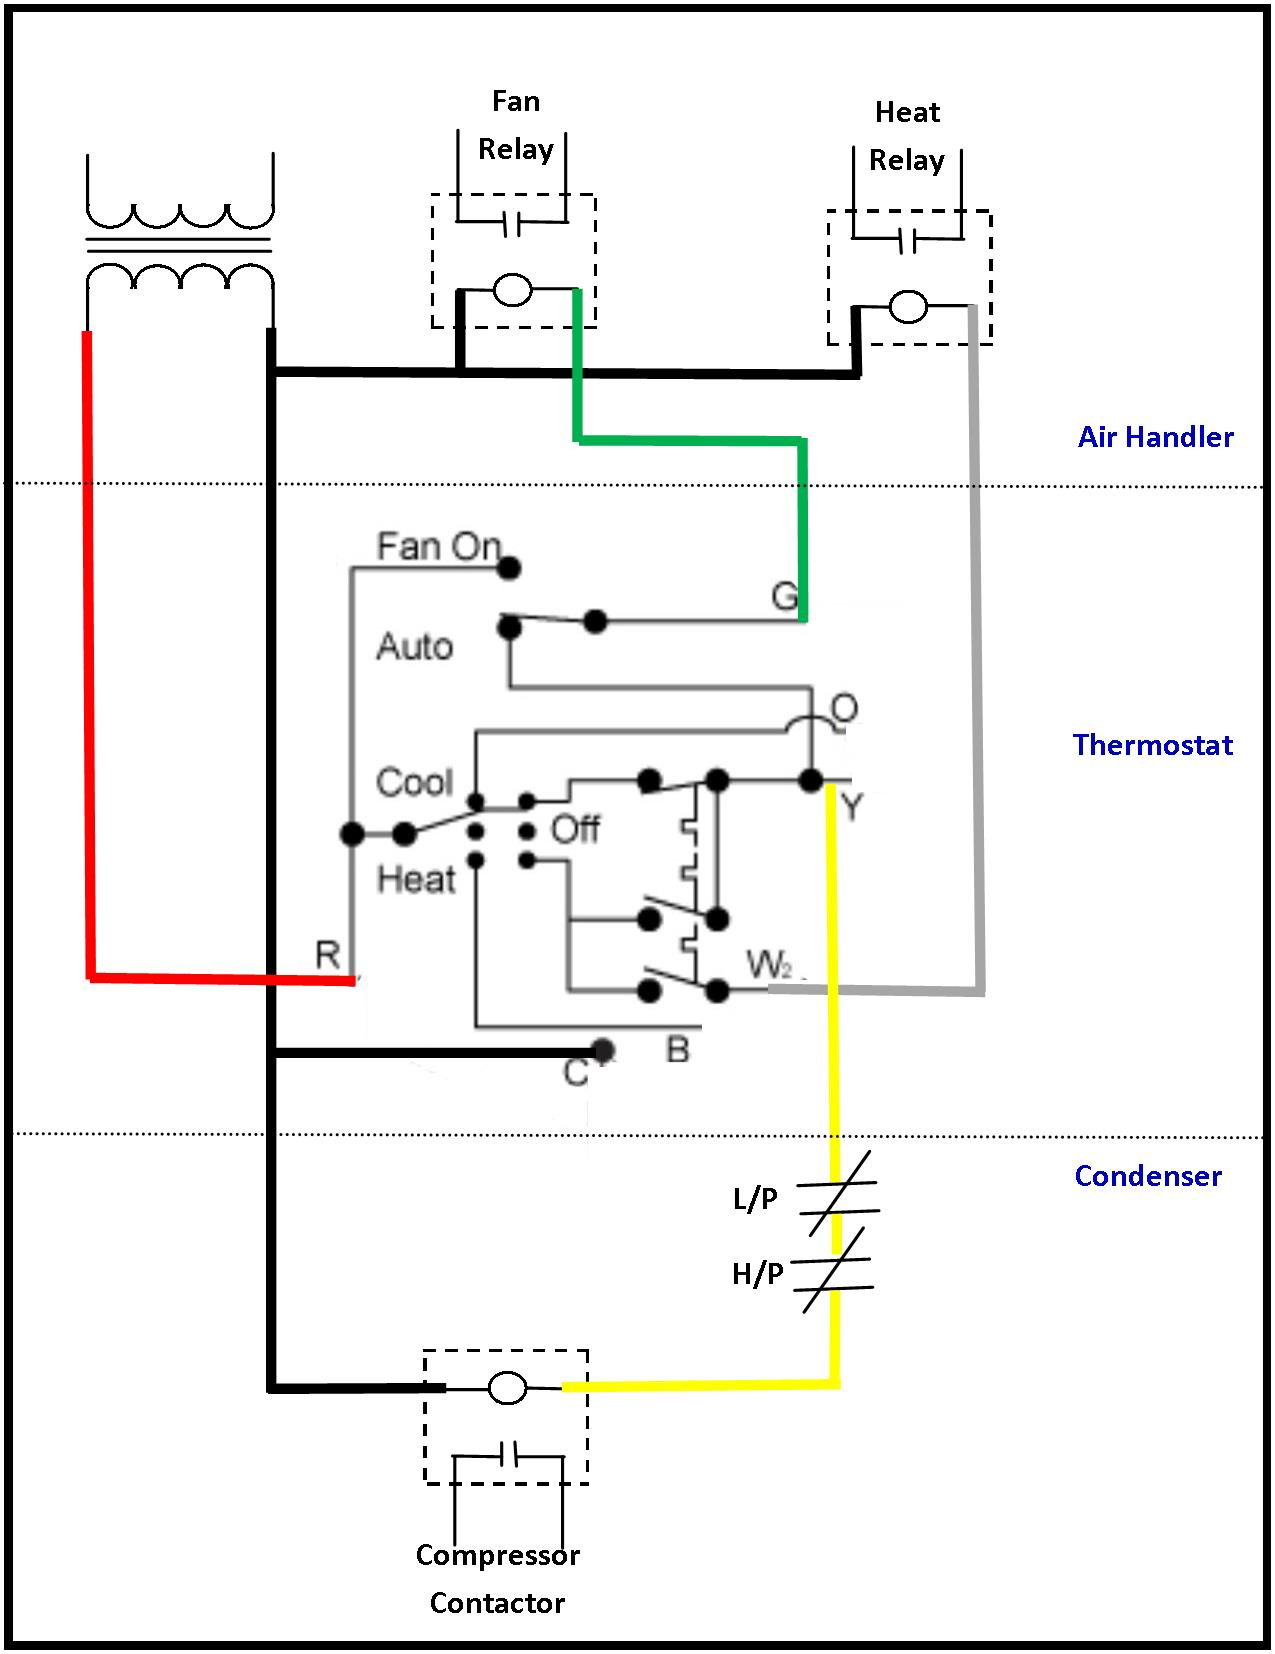 Transformer Wiring Diagram 480V To 120 240V | Wiring Diagram - 480V To 240V Transformer Wiring Diagram